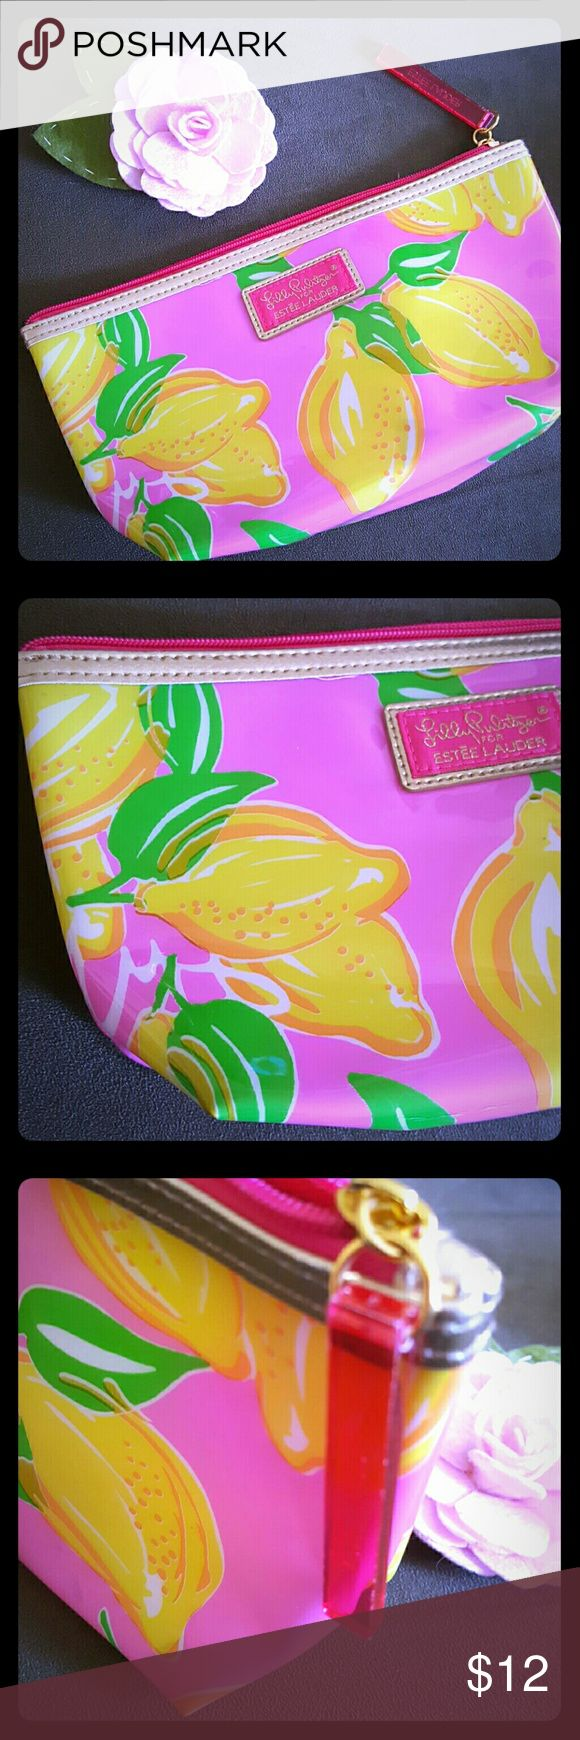 "🍋 Lilly Pulitzer for Estee Lauder cosmetic bag 🍋 Adorable pink bag with bright yellow lemons and gold detailing. Sturdy, plastic coating makes bag easy to clean! Measures 9.5"" x 5"" x 3"" In GUC.  BUNDLE & SAVE  POSH RECOMMENDED SELLER Lilly Pulitzer Bags Cosmetic Bags & Cases"